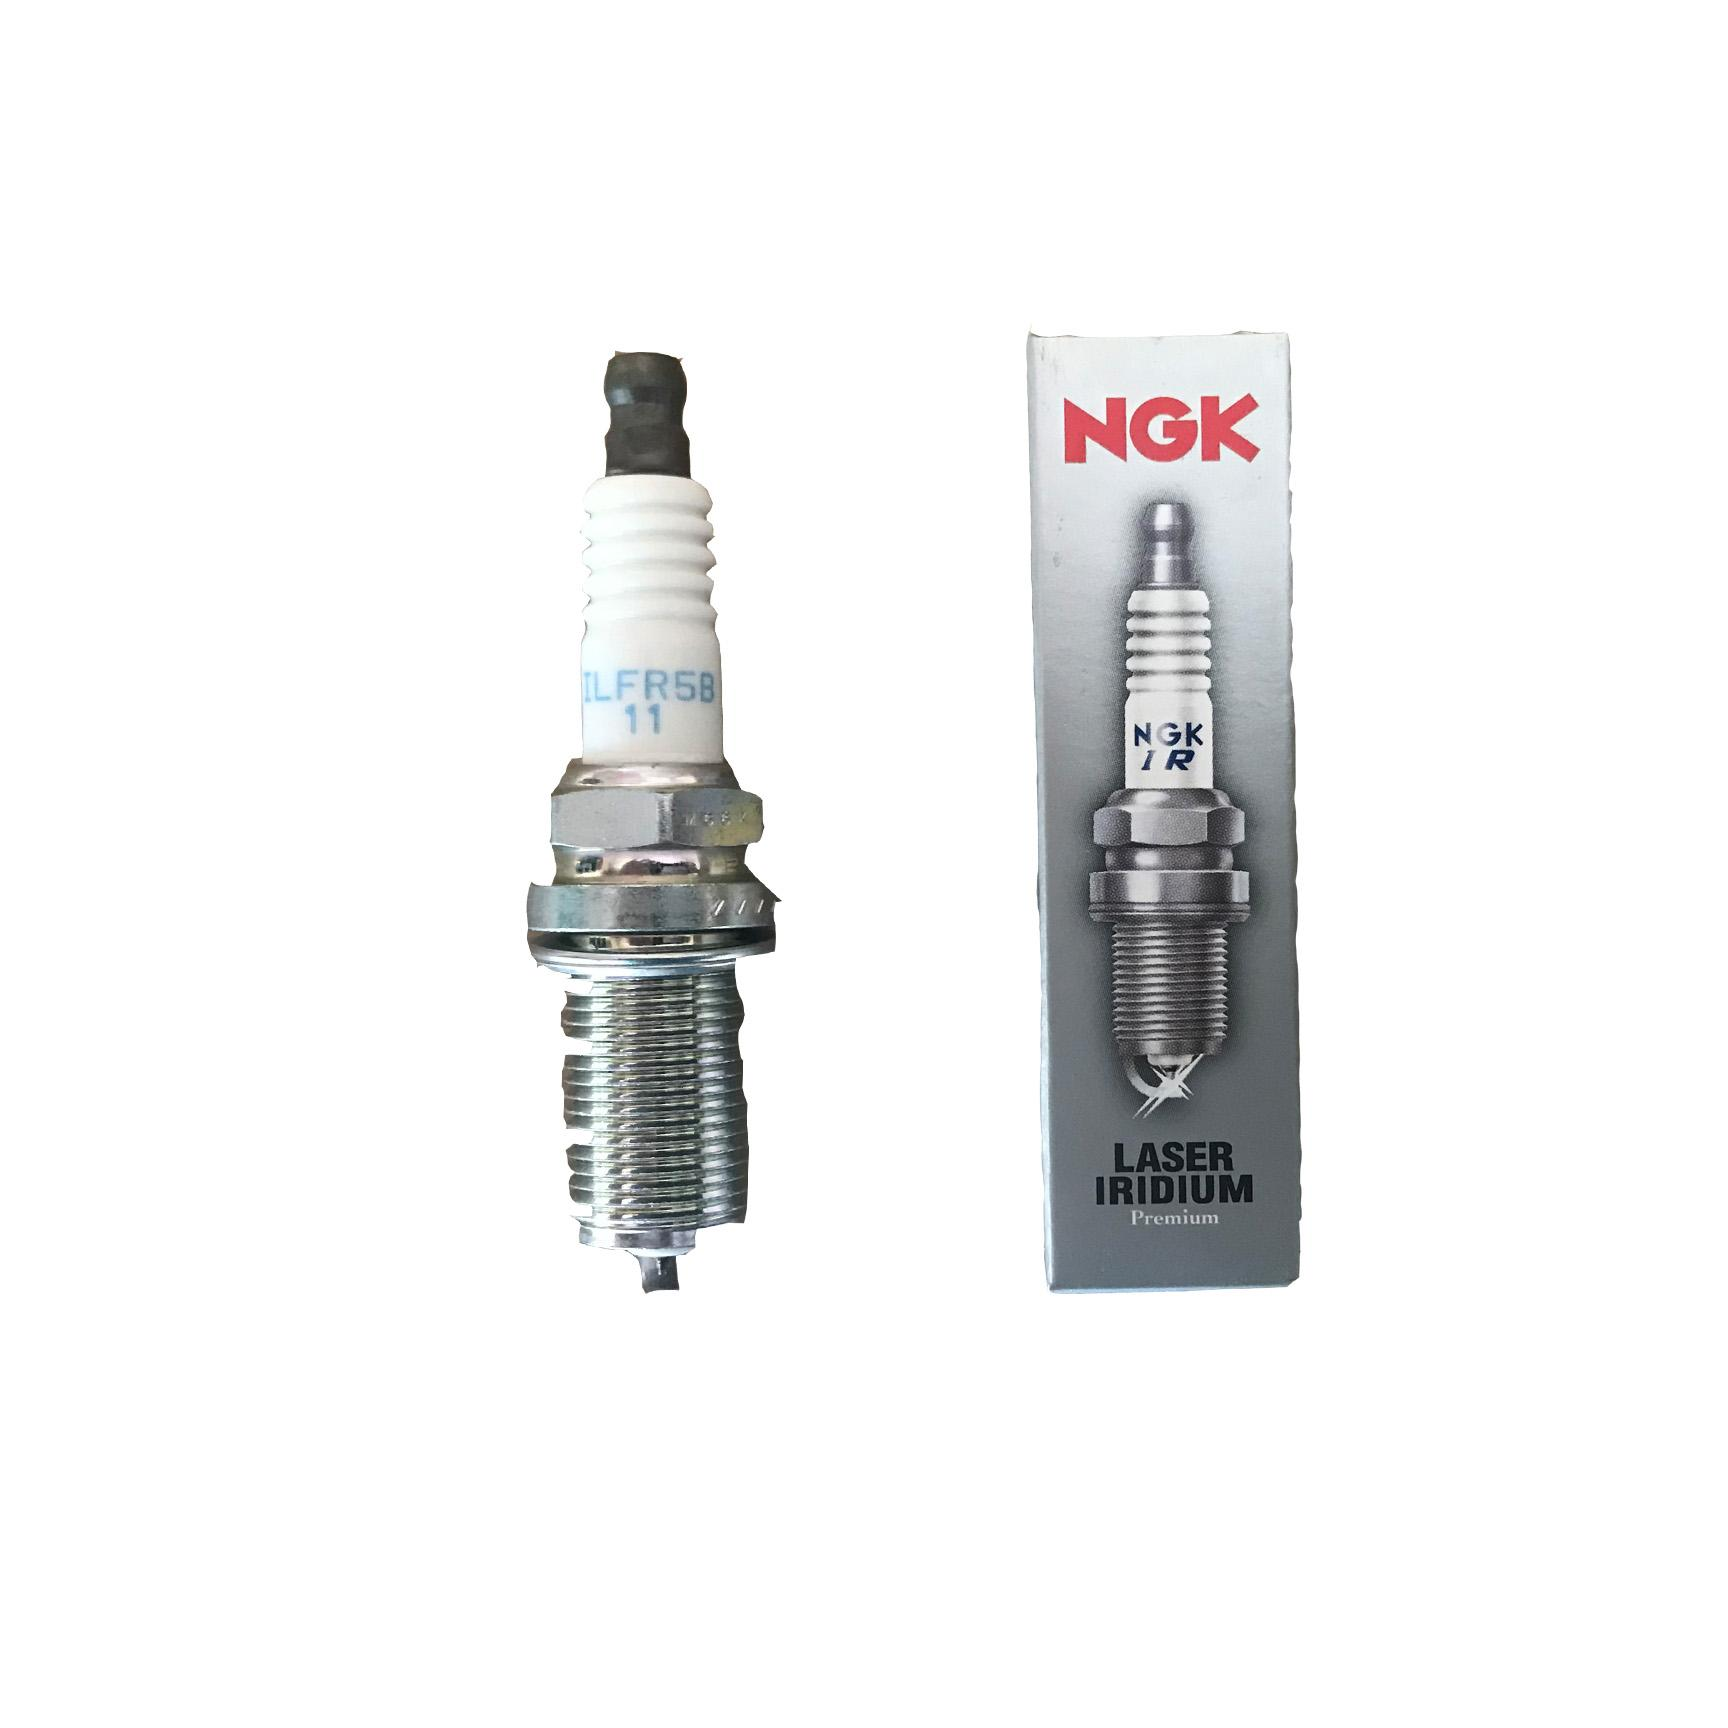 LZFR5BI-II NGK Laser Iridium Spark plugs for Mitsubishi Mirage and G4 2012-2016